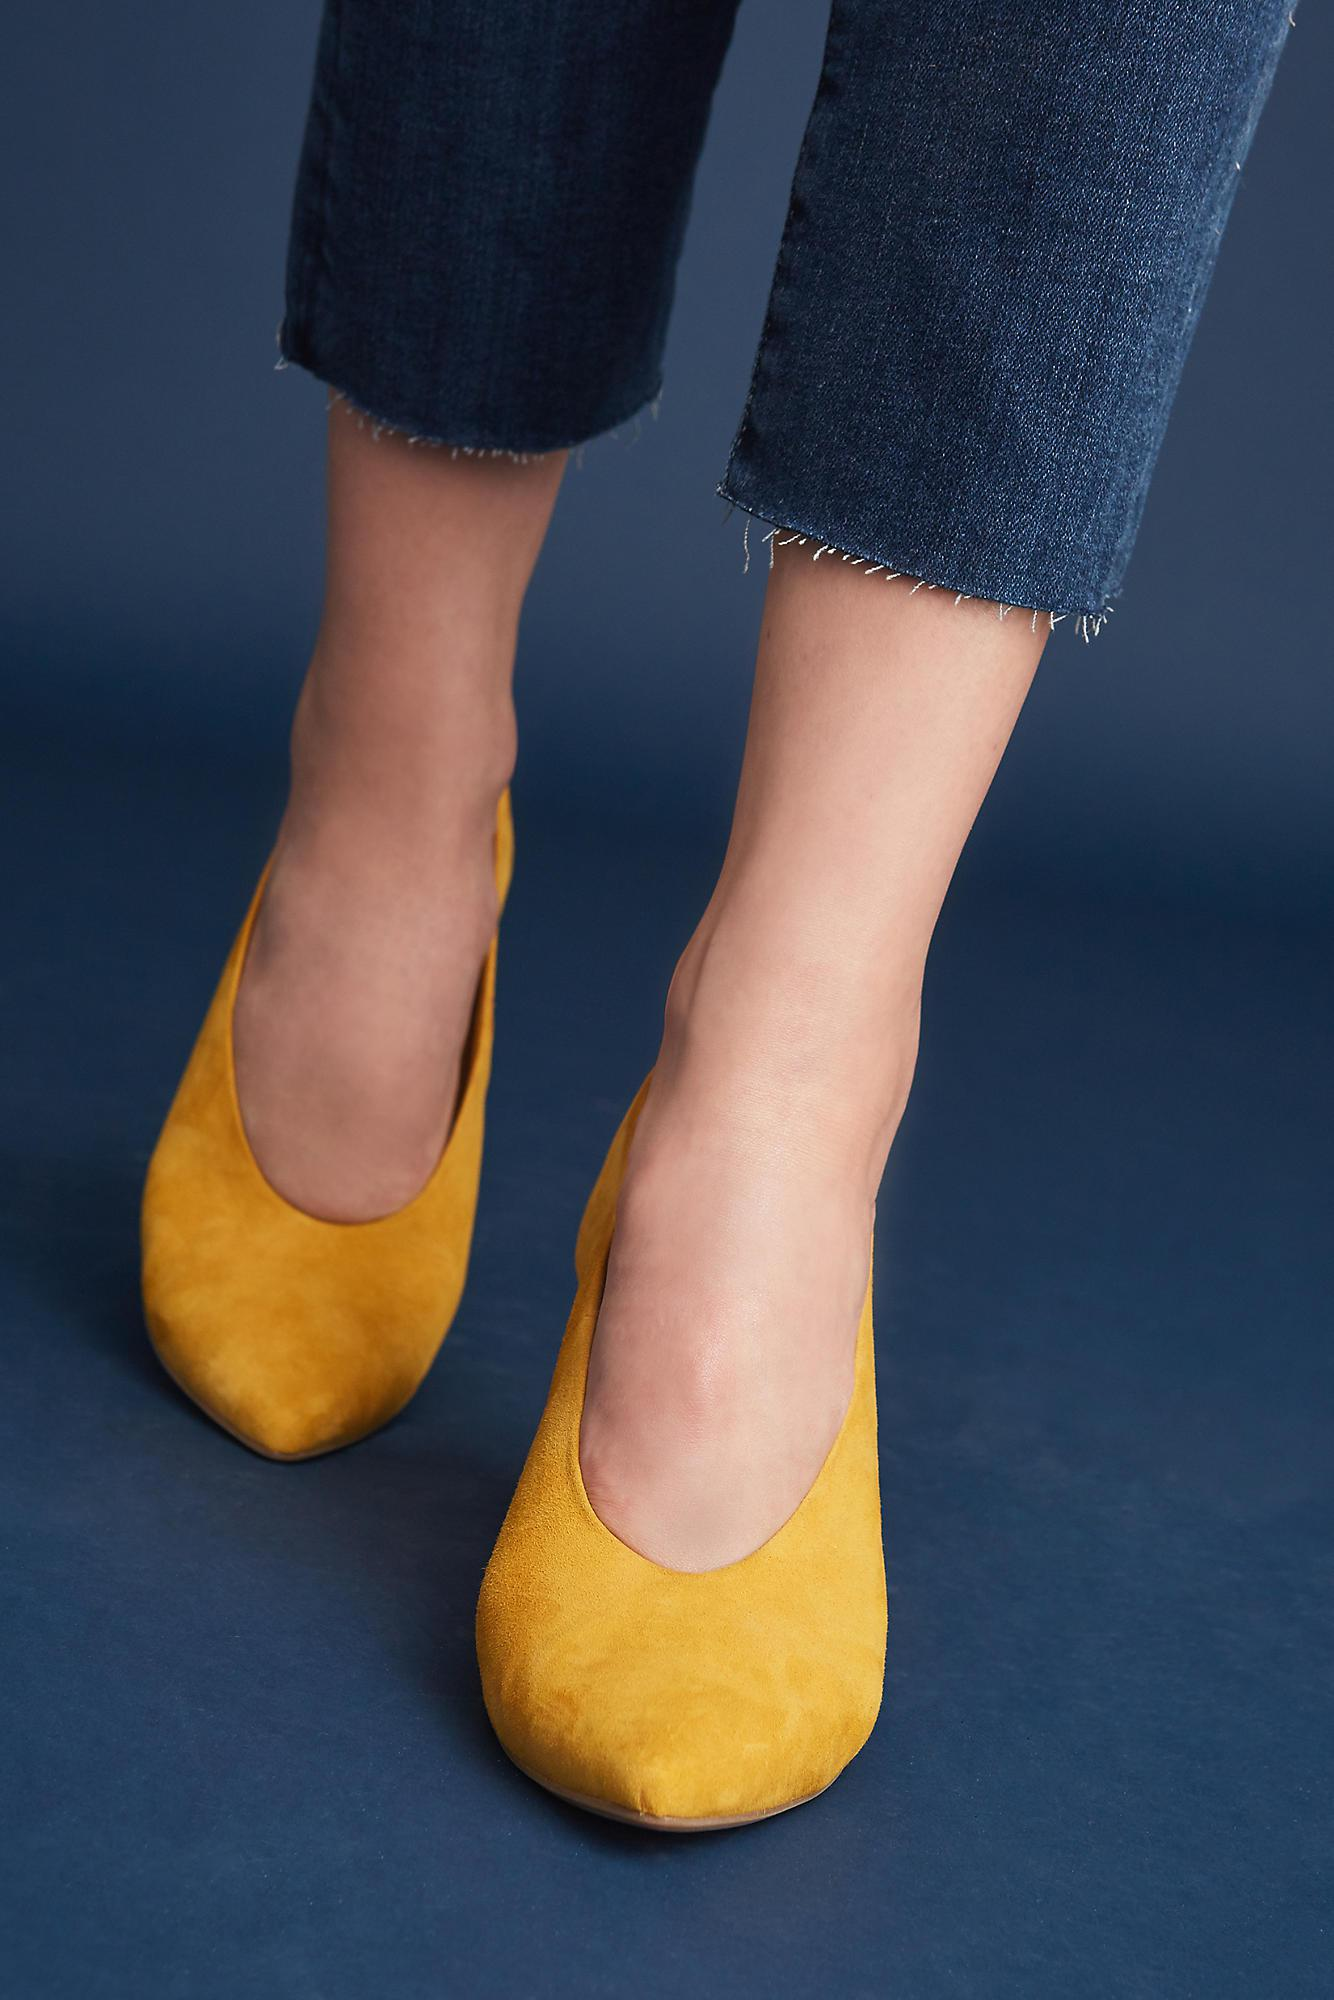 cb1bca15b67c Anthropologie Seychelles Rehearse Heels in Yellow - Lyst